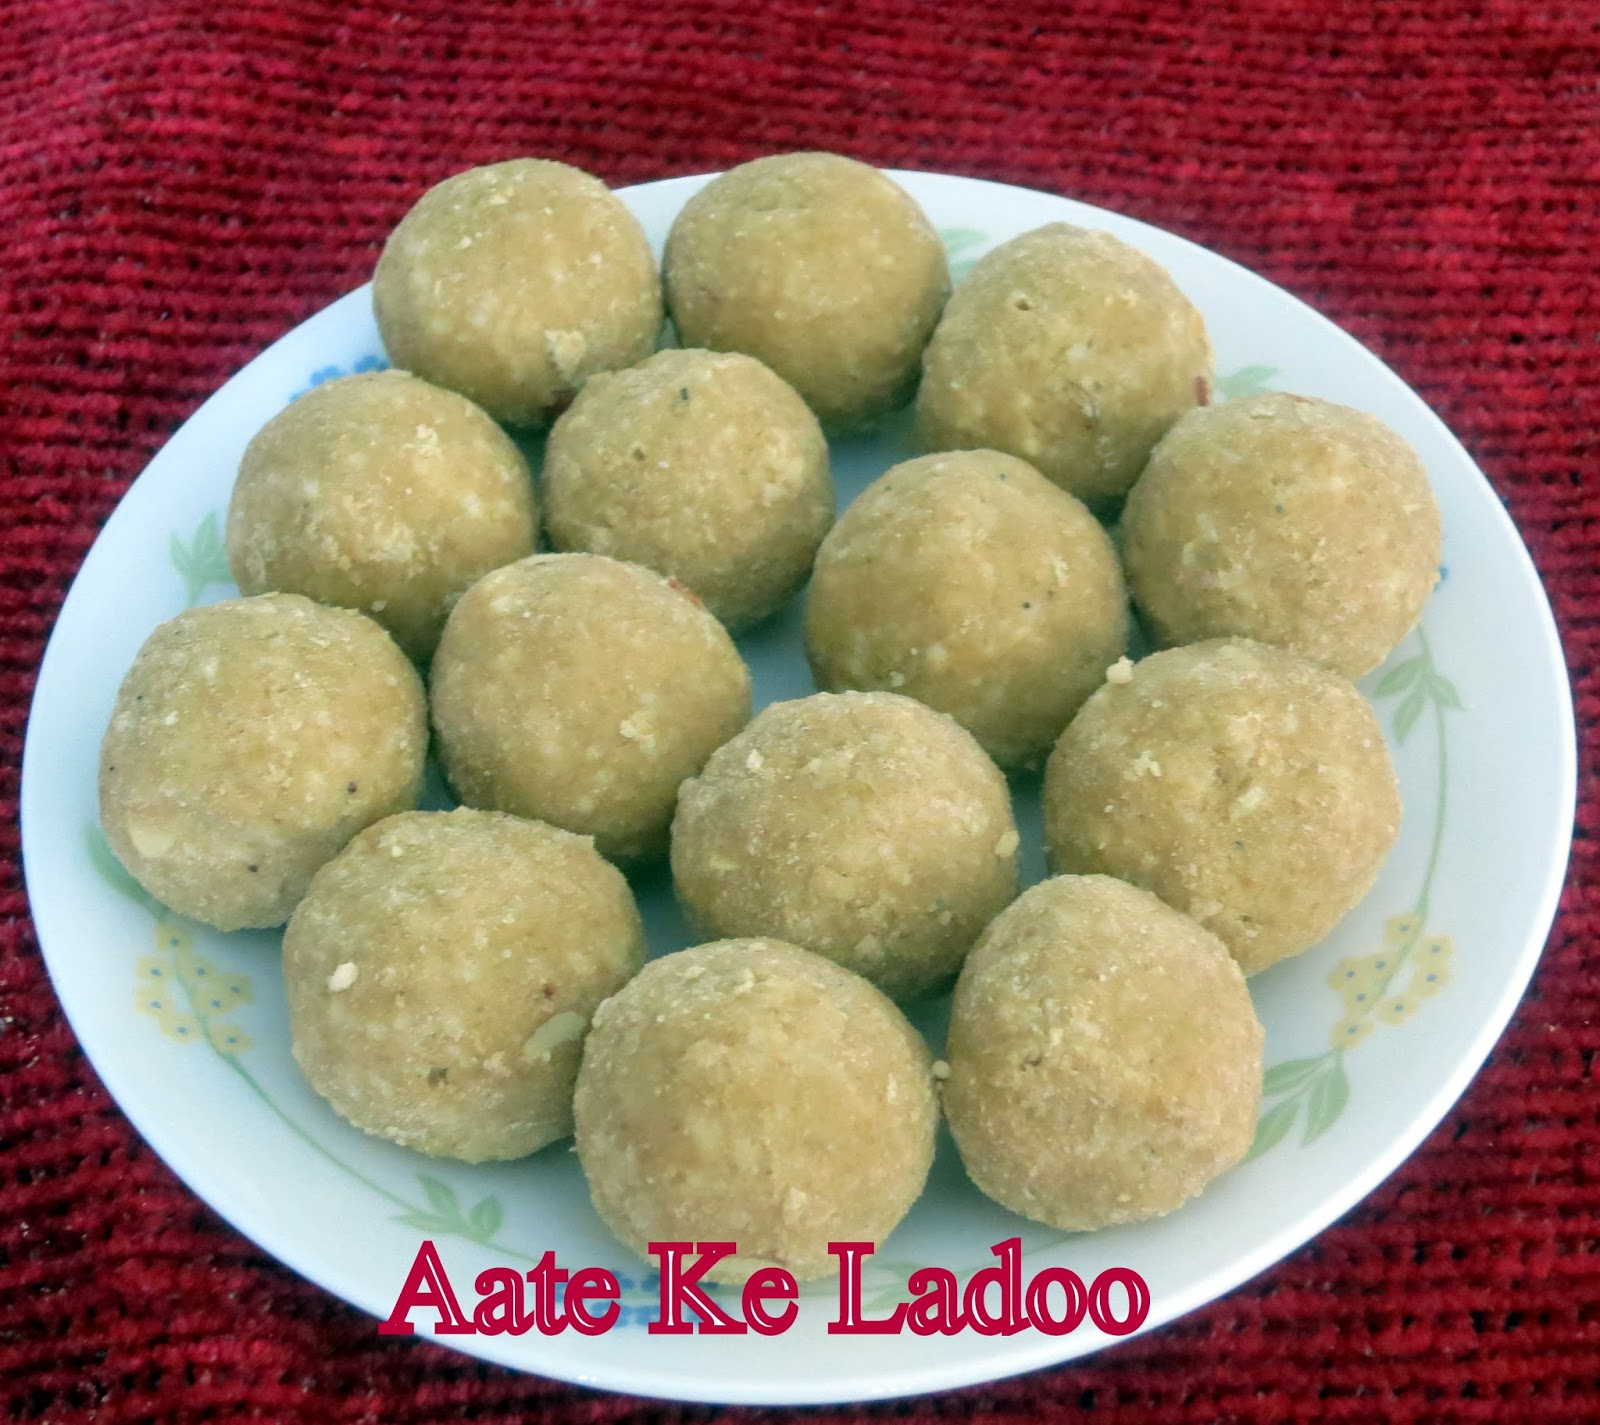 Indian food recipes indian recipes desi food desi recipes do try this easy to make and healthy ladoo for your family and friends in this winter season and enjoy forumfinder Images